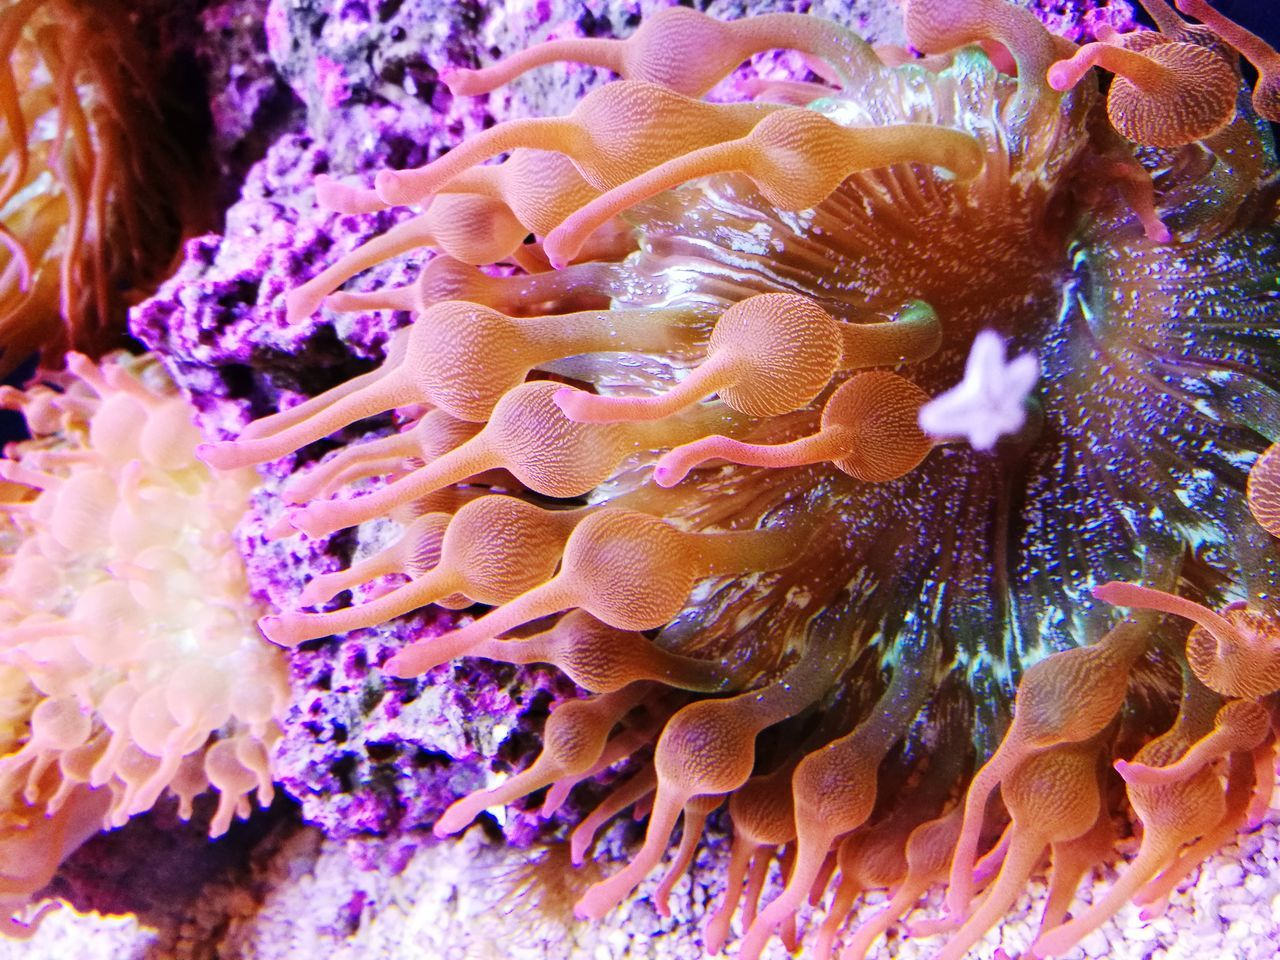 underwater, sea life, undersea, coral, sea anemone, sea, animal themes, animal wildlife, no people, tentacle, animals in the wild, water, one animal, clown fish, nature, close-up, beauty in nature, fragility, outdoors, mammal, day